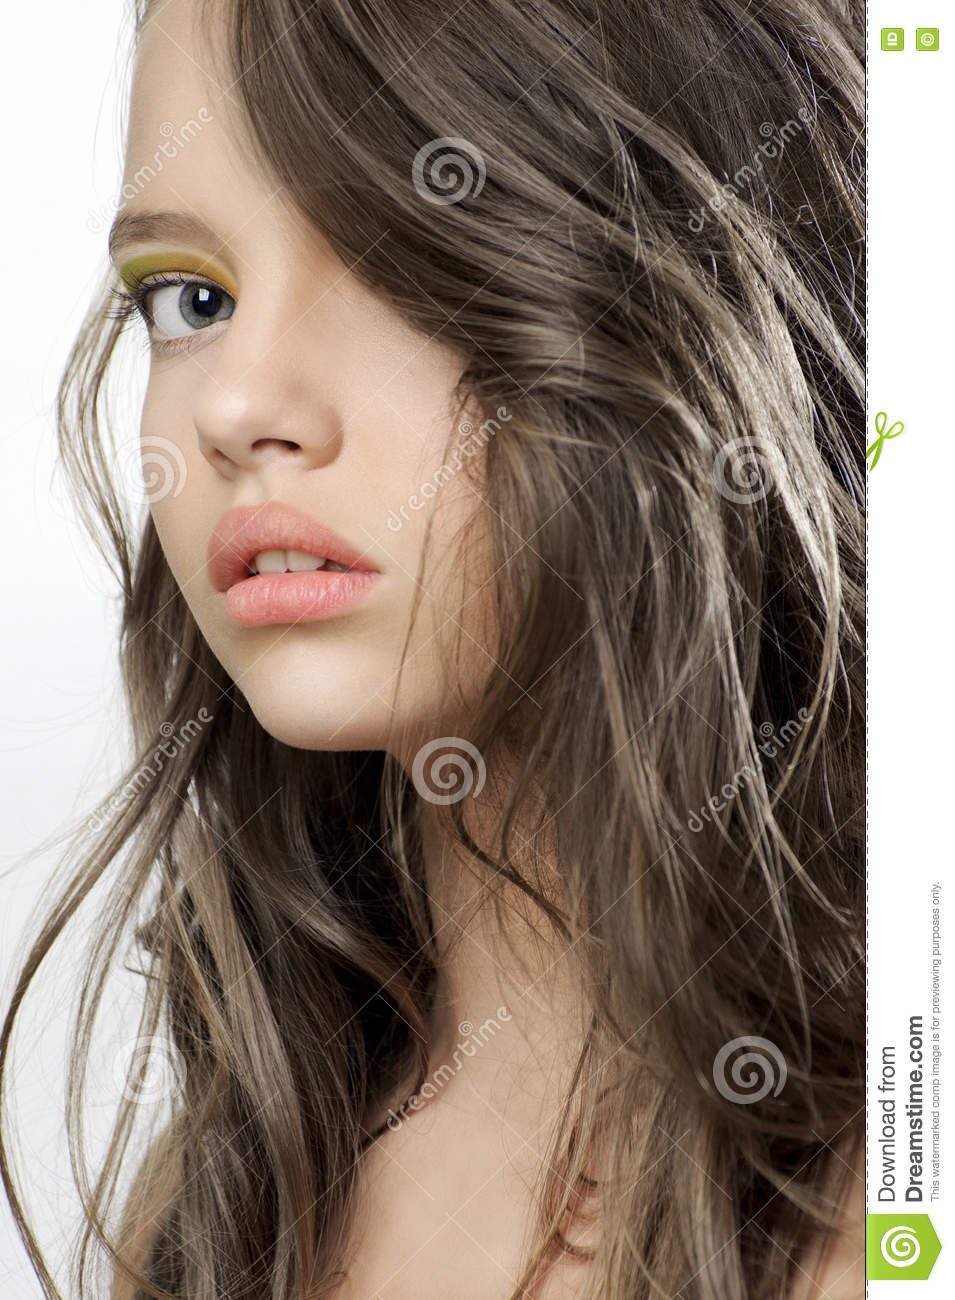 Beautiful Teen Girl: Beauty Portrait Of A Young Beautiful Teen Girl. Stock